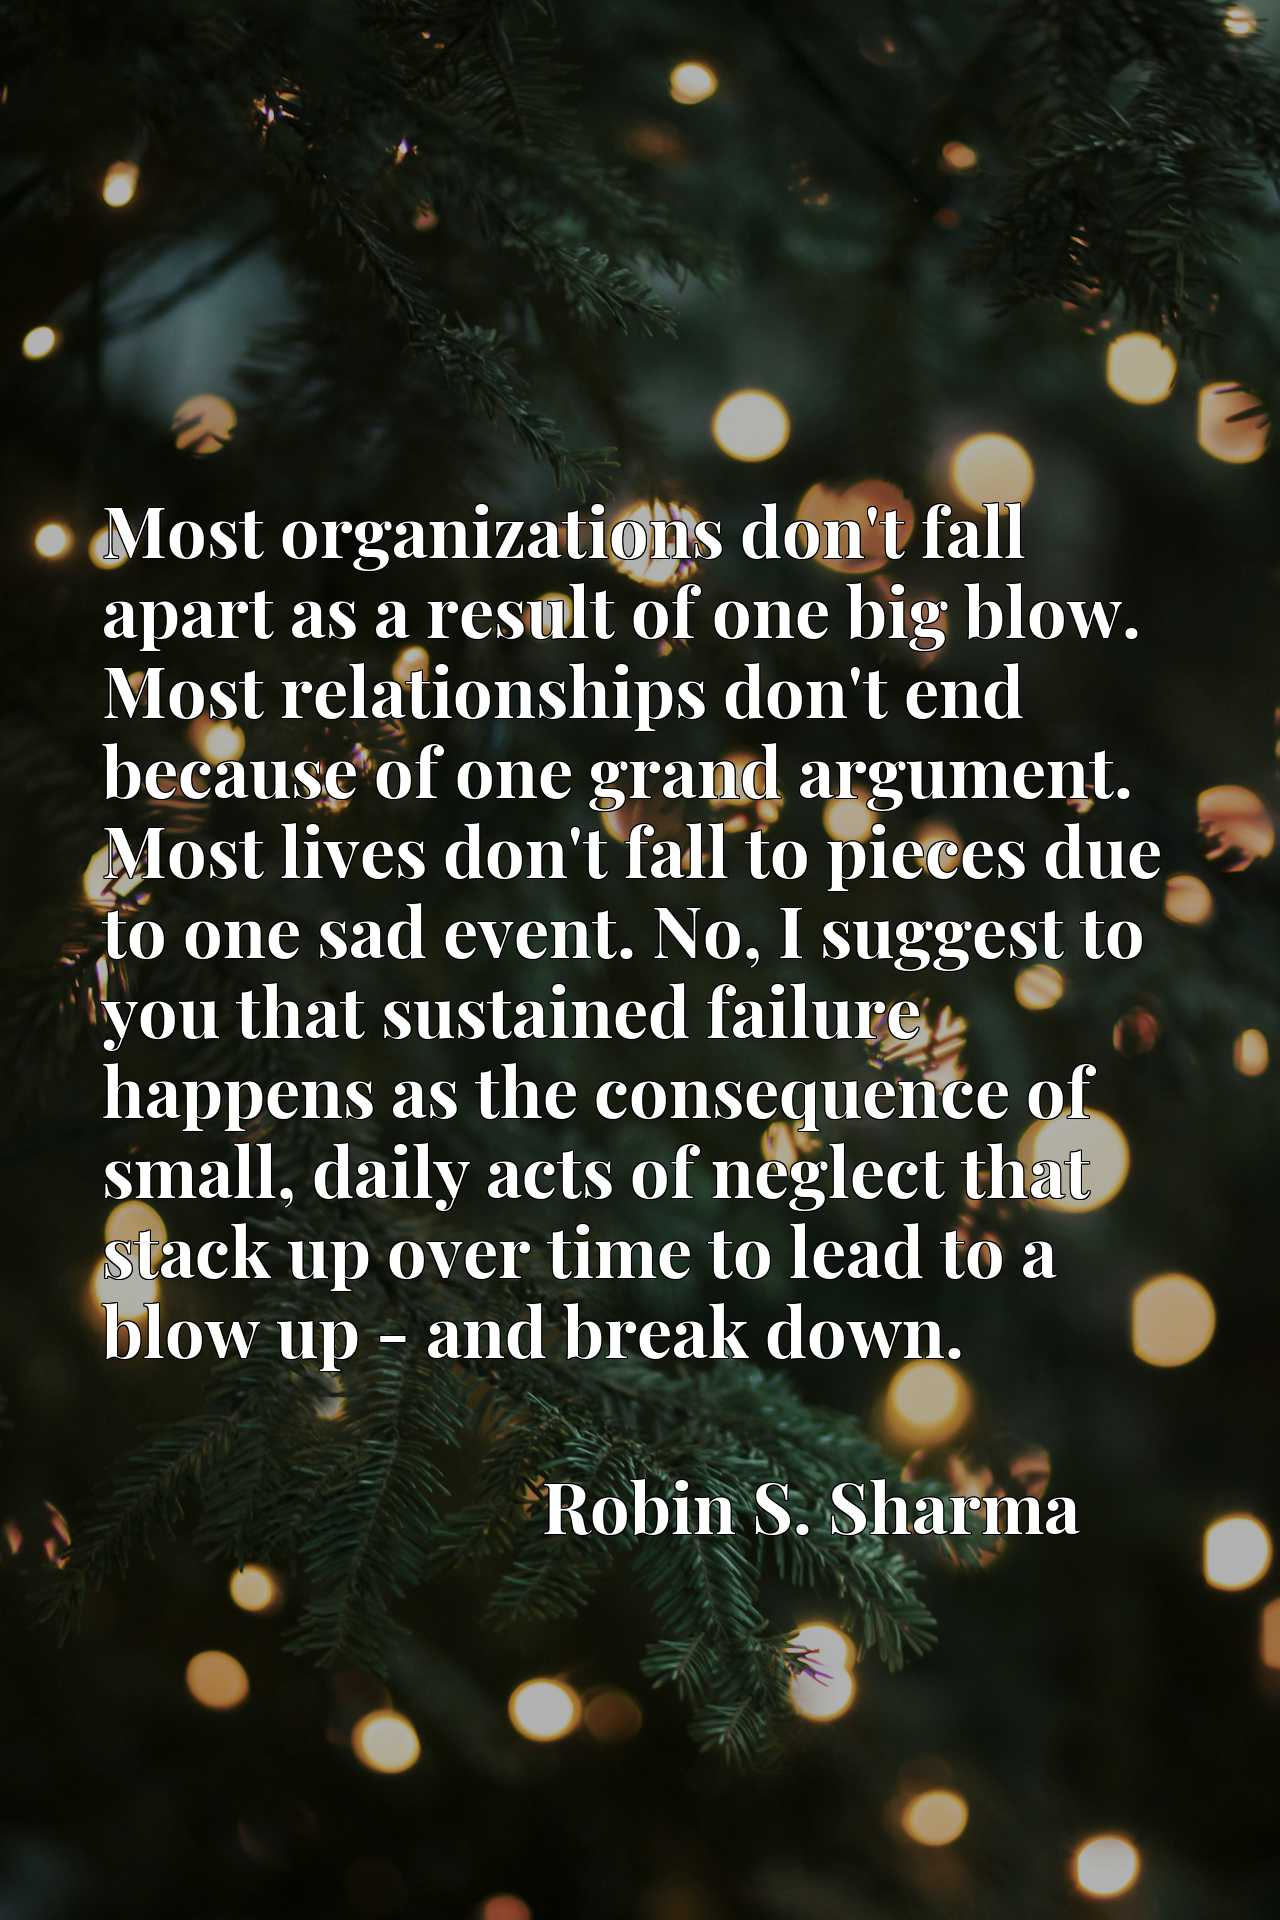 Most organizations don't fall apart as a result of one big blow. Most relationships don't end because of one grand argument. Most lives don't fall to pieces due to one sad event. No, I suggest to you that sustained failure happens as the consequence of small, daily acts of neglect that stack up over time to lead to a blow up - and break down.